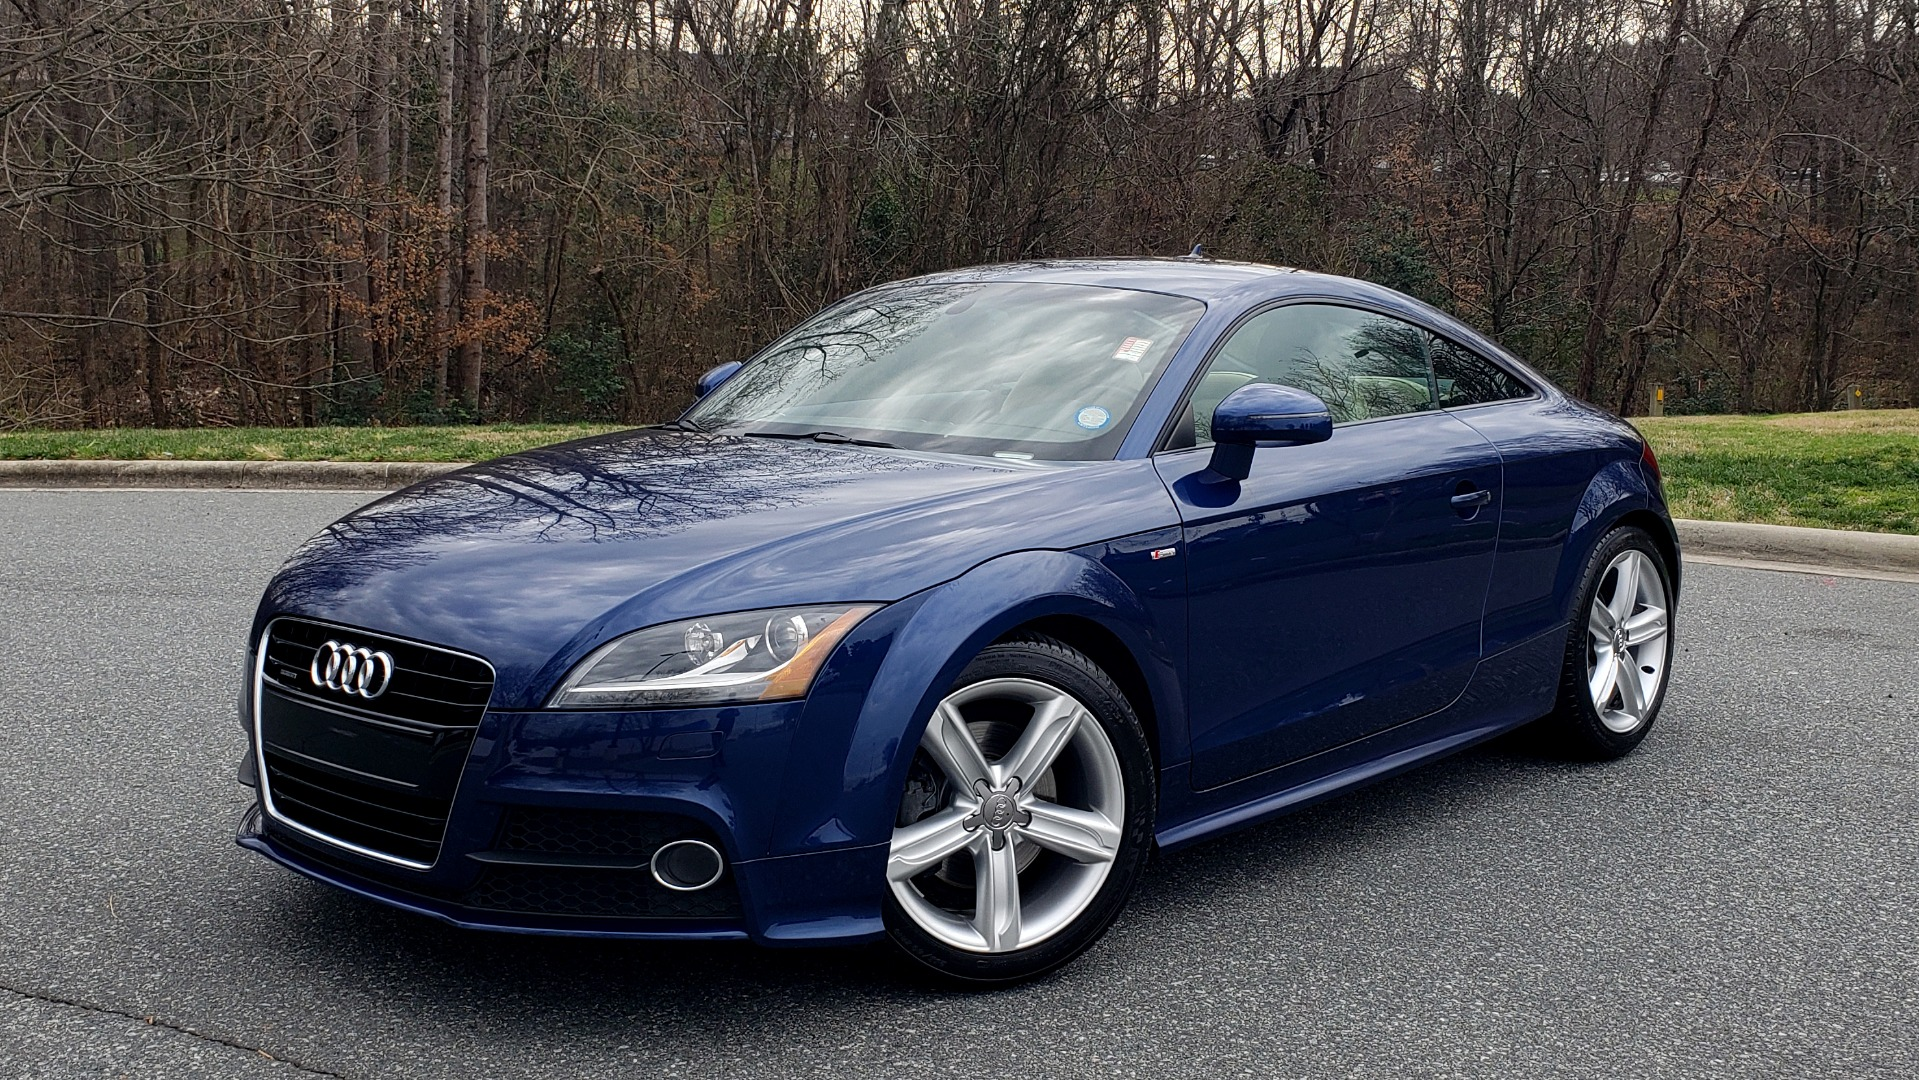 Used 2014 Audi TT 2.0T S-TRONIC / COUPE / AWD / LEATHER / HEATED SEATS for sale Sold at Formula Imports in Charlotte NC 28227 1